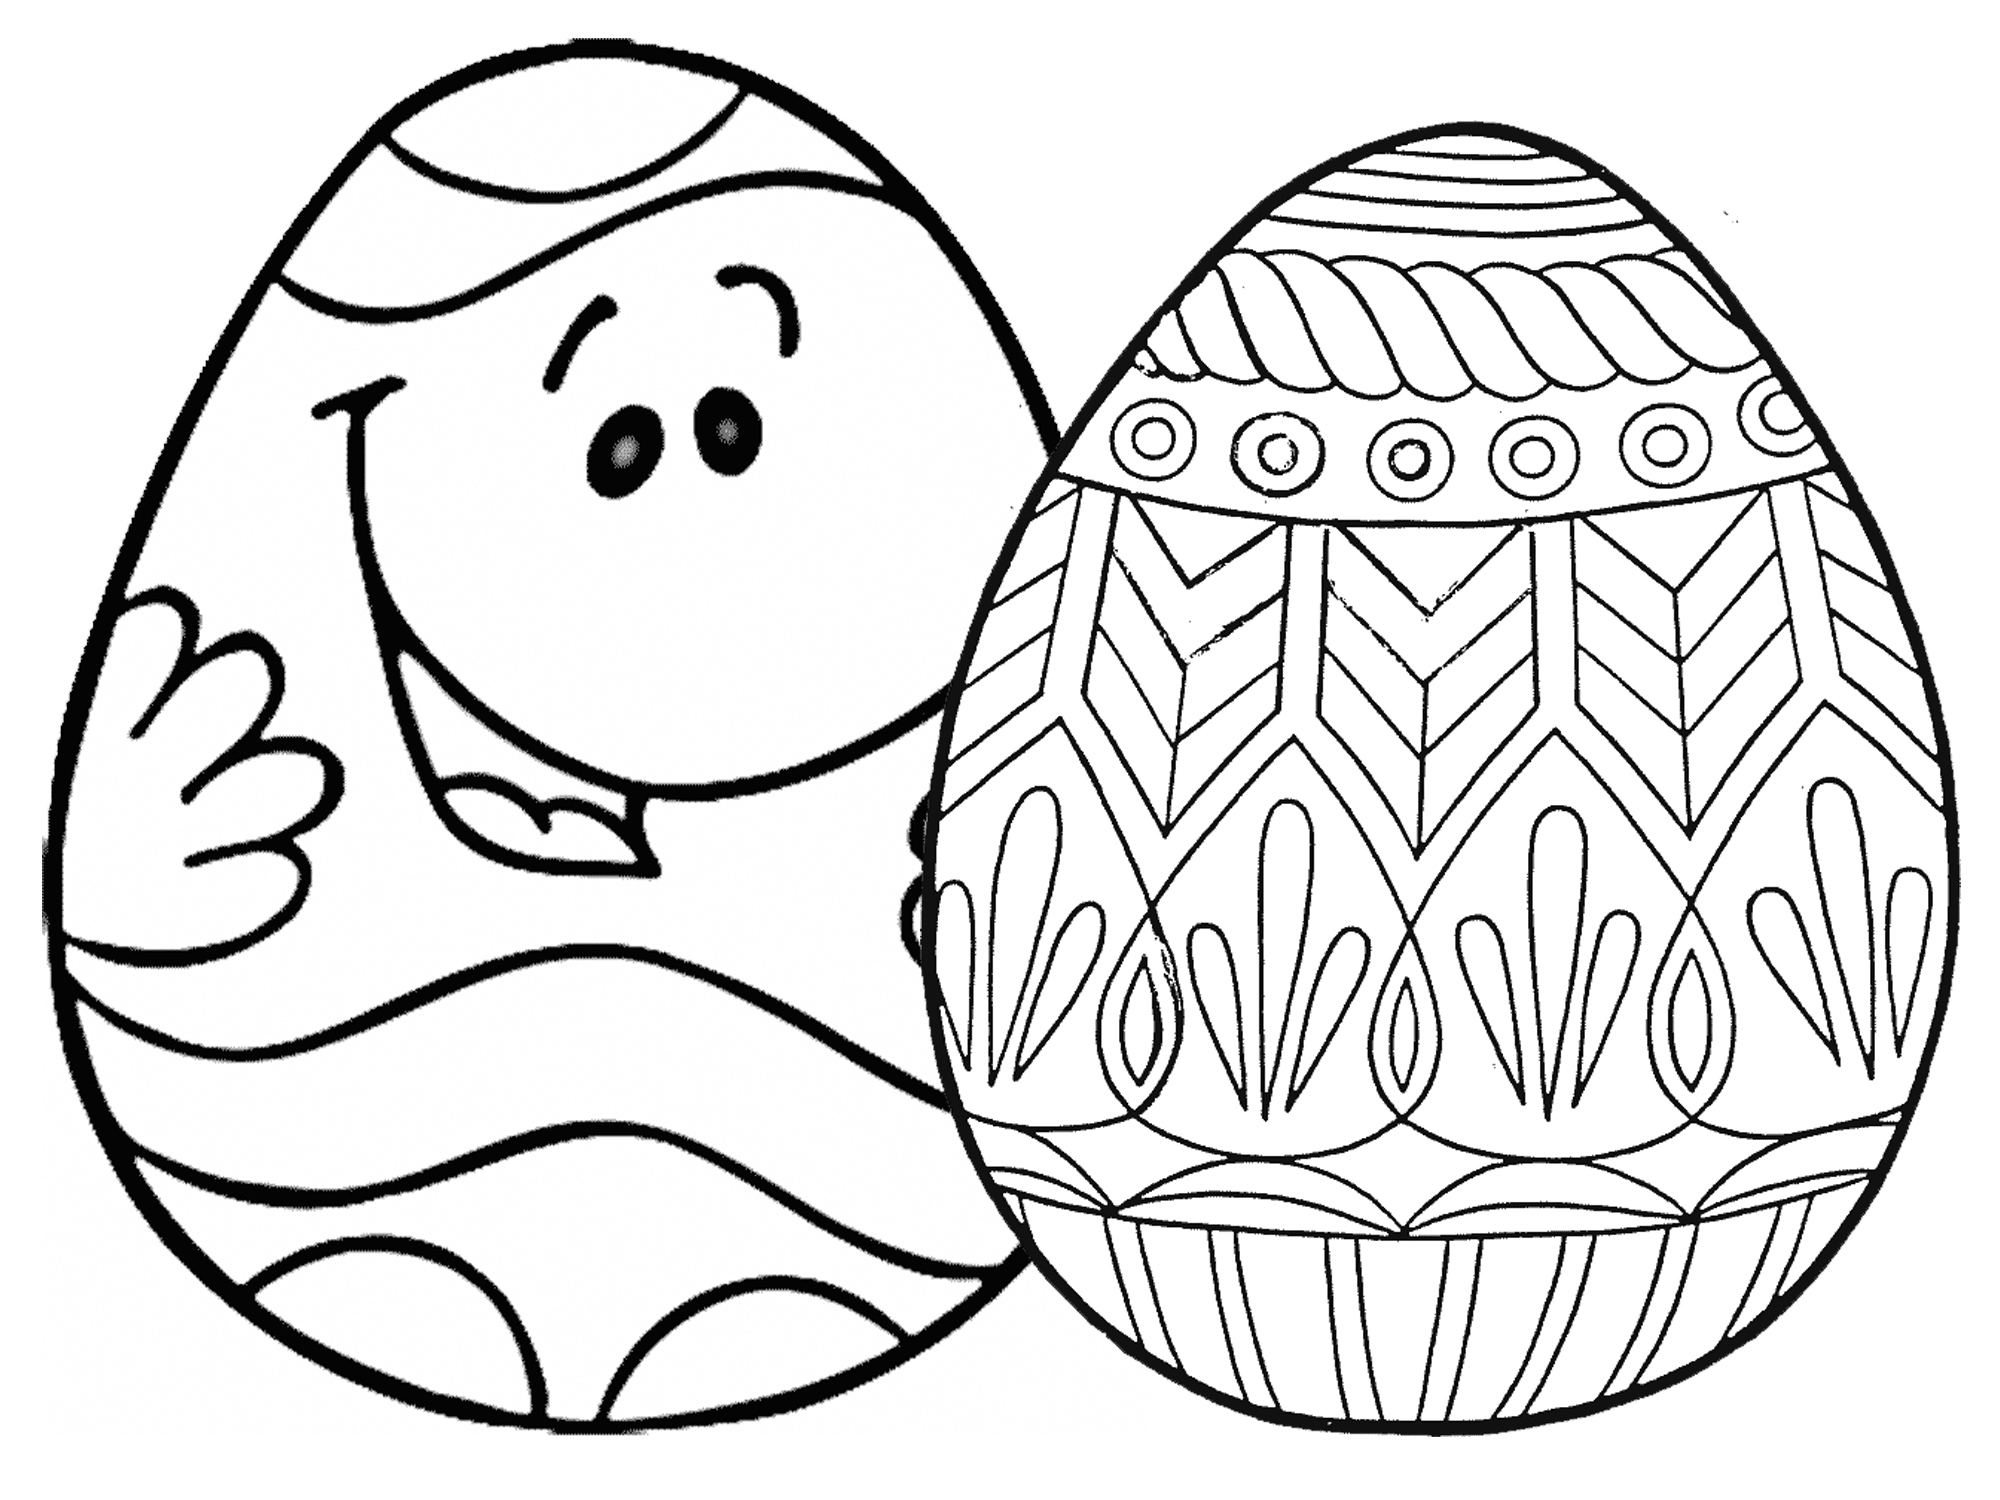 coloring pages of easter eggs 7 places for free printable easter egg coloring pages pages of easter coloring eggs